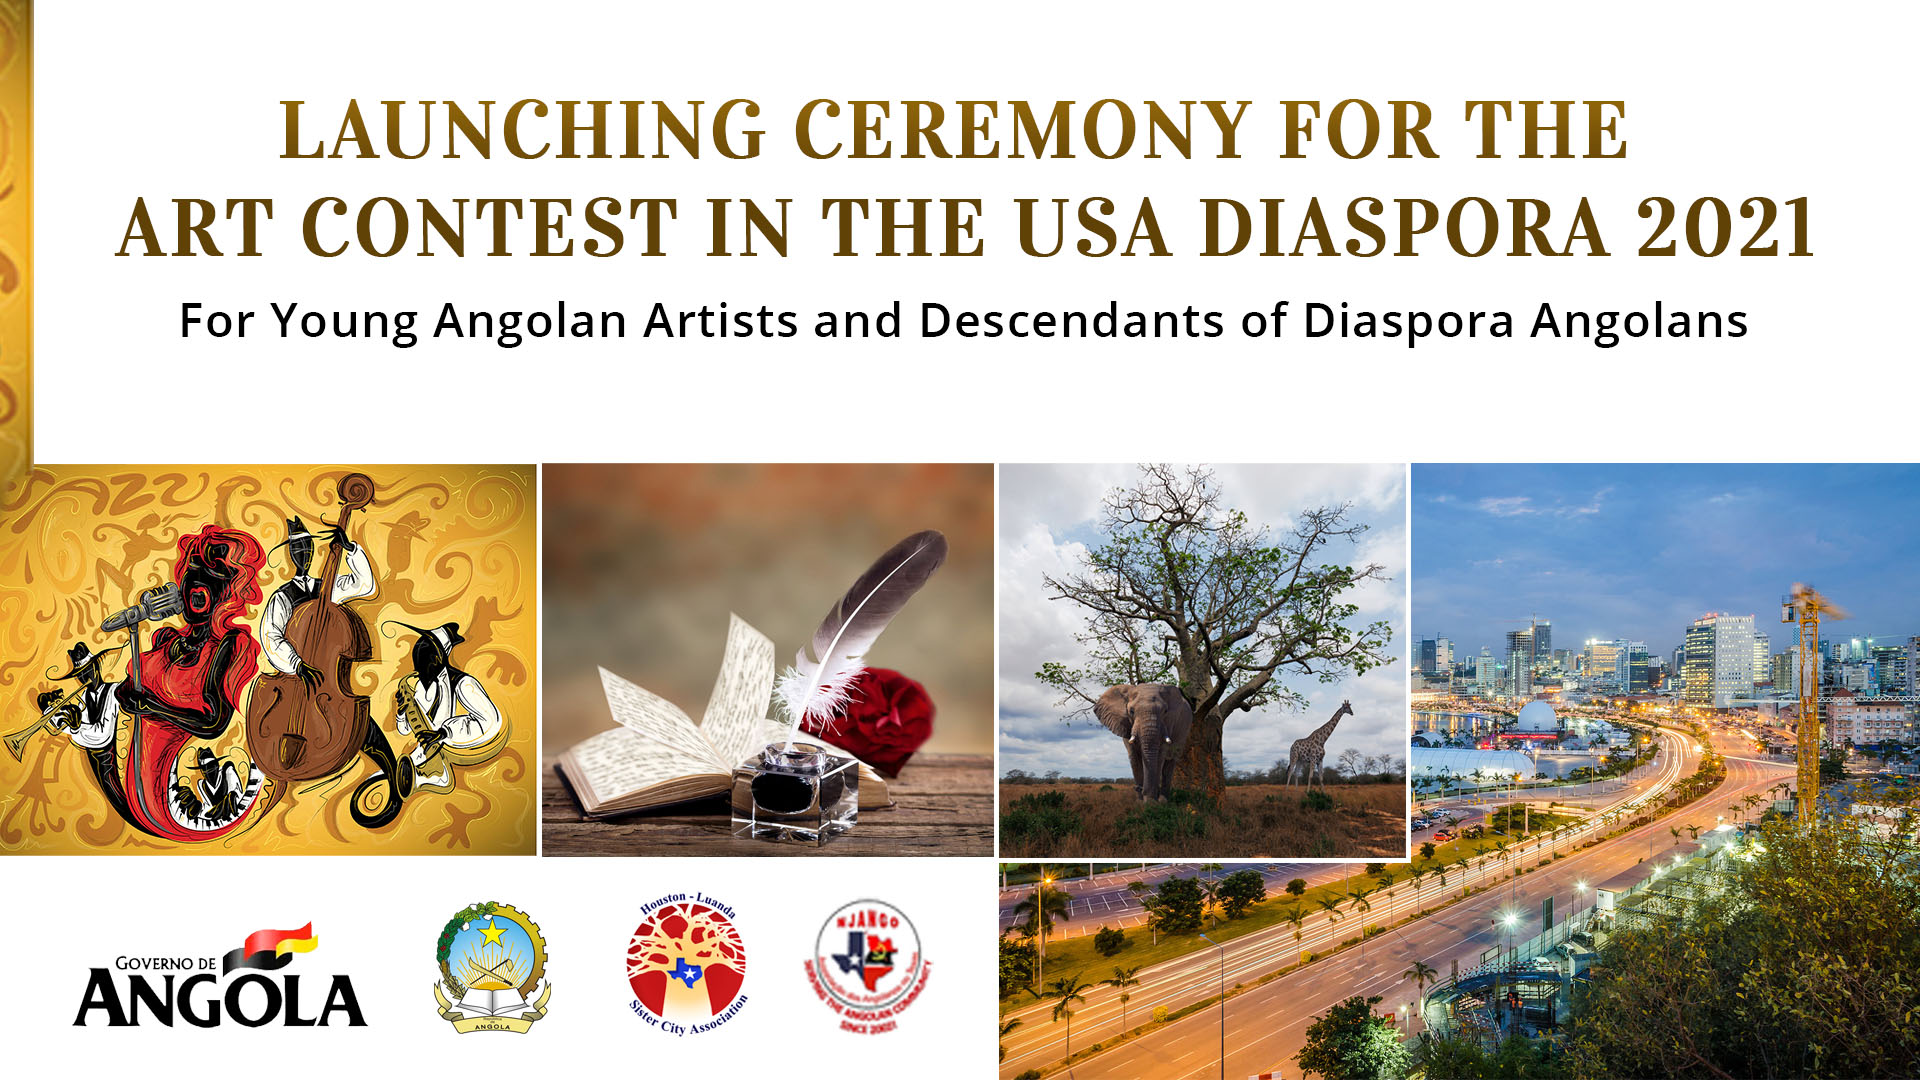 Art Contest for the Angolan Diaspora in the USA